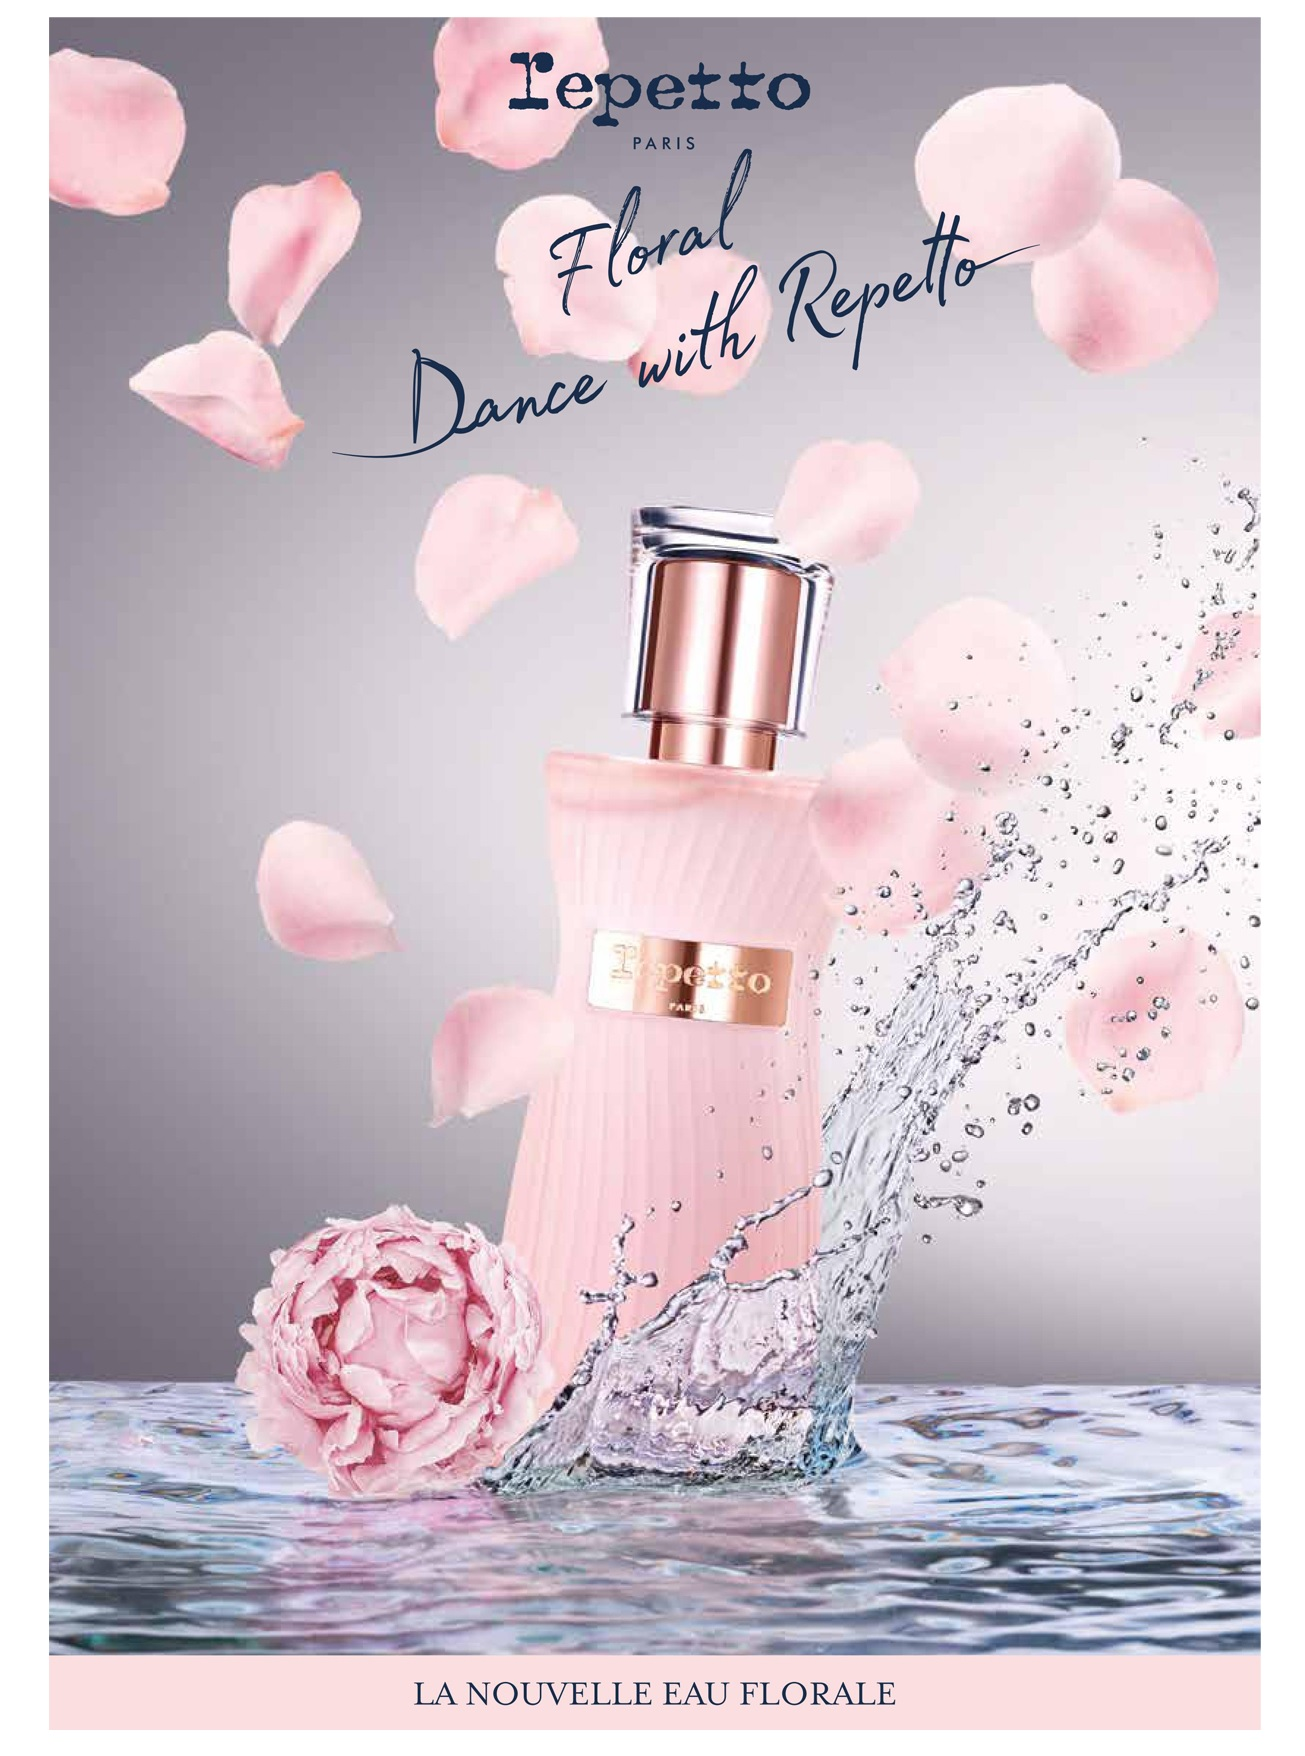 Dance With Repetto Florale Repetto Perfume A New Fragrance For